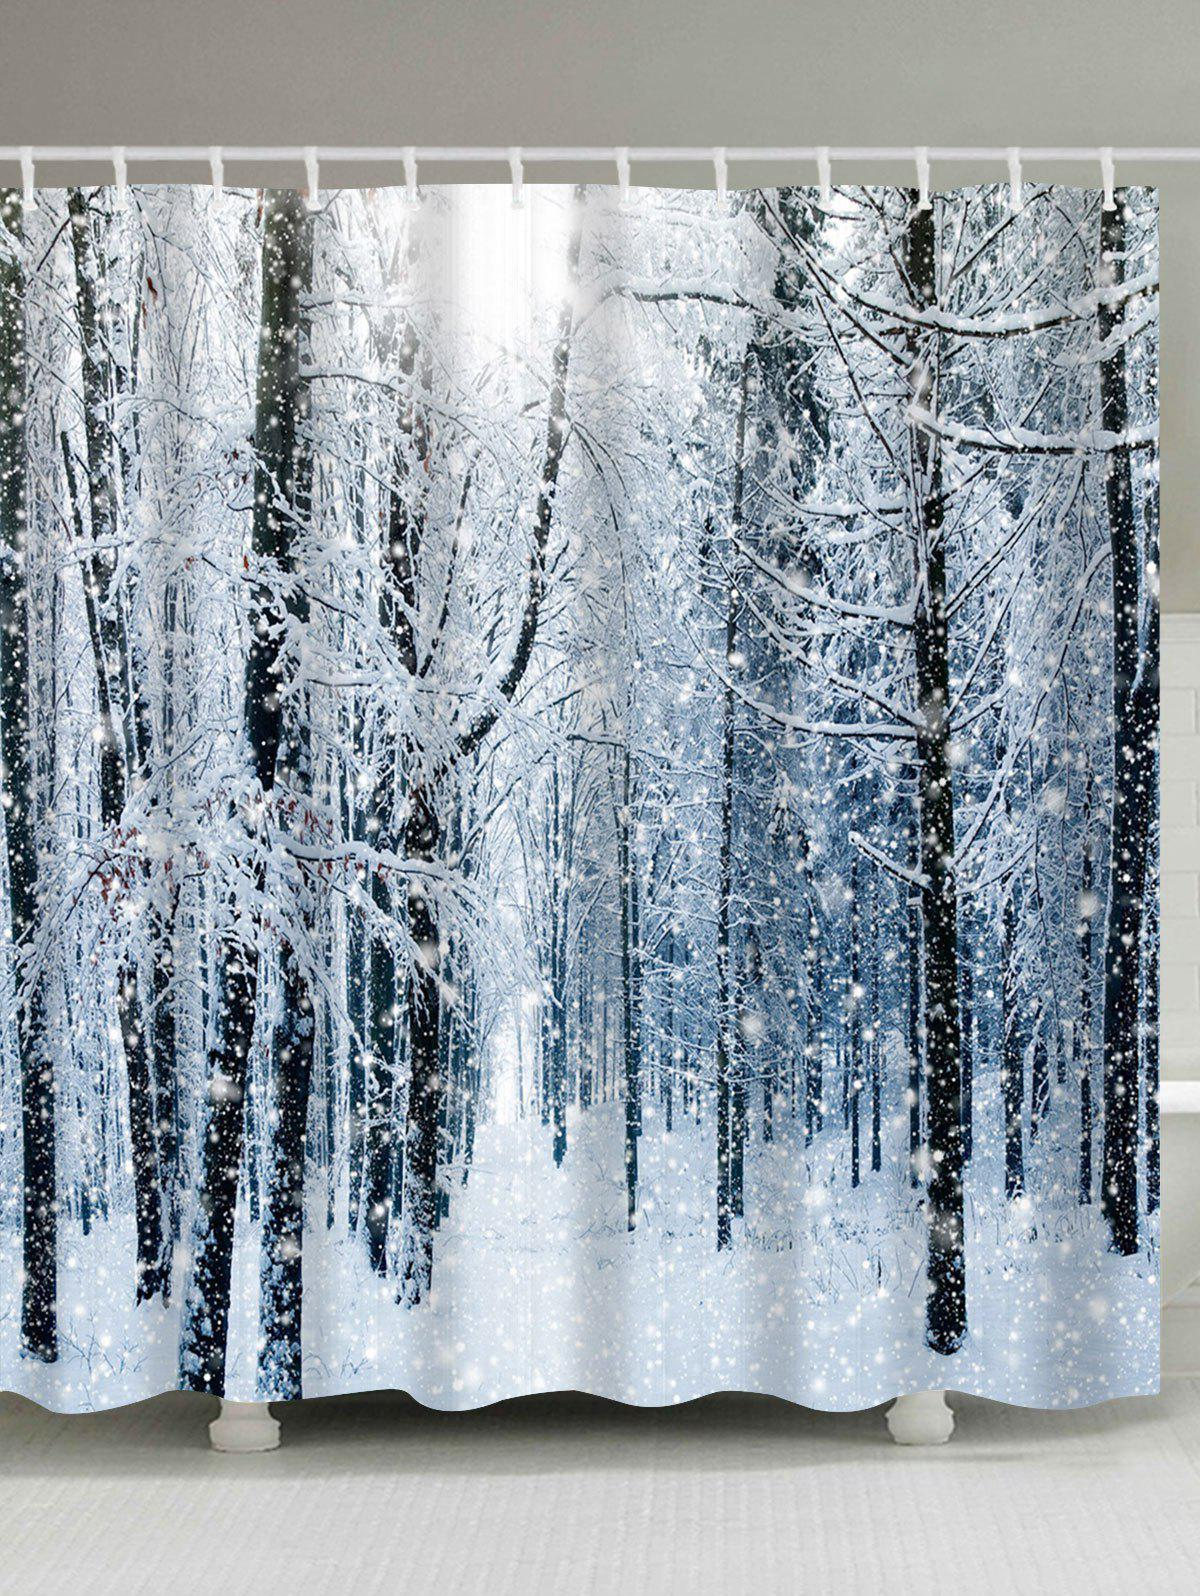 Christmas Snow Forest Print Waterproof Bath Curtain merry christmas printed bath waterproof shower curtain